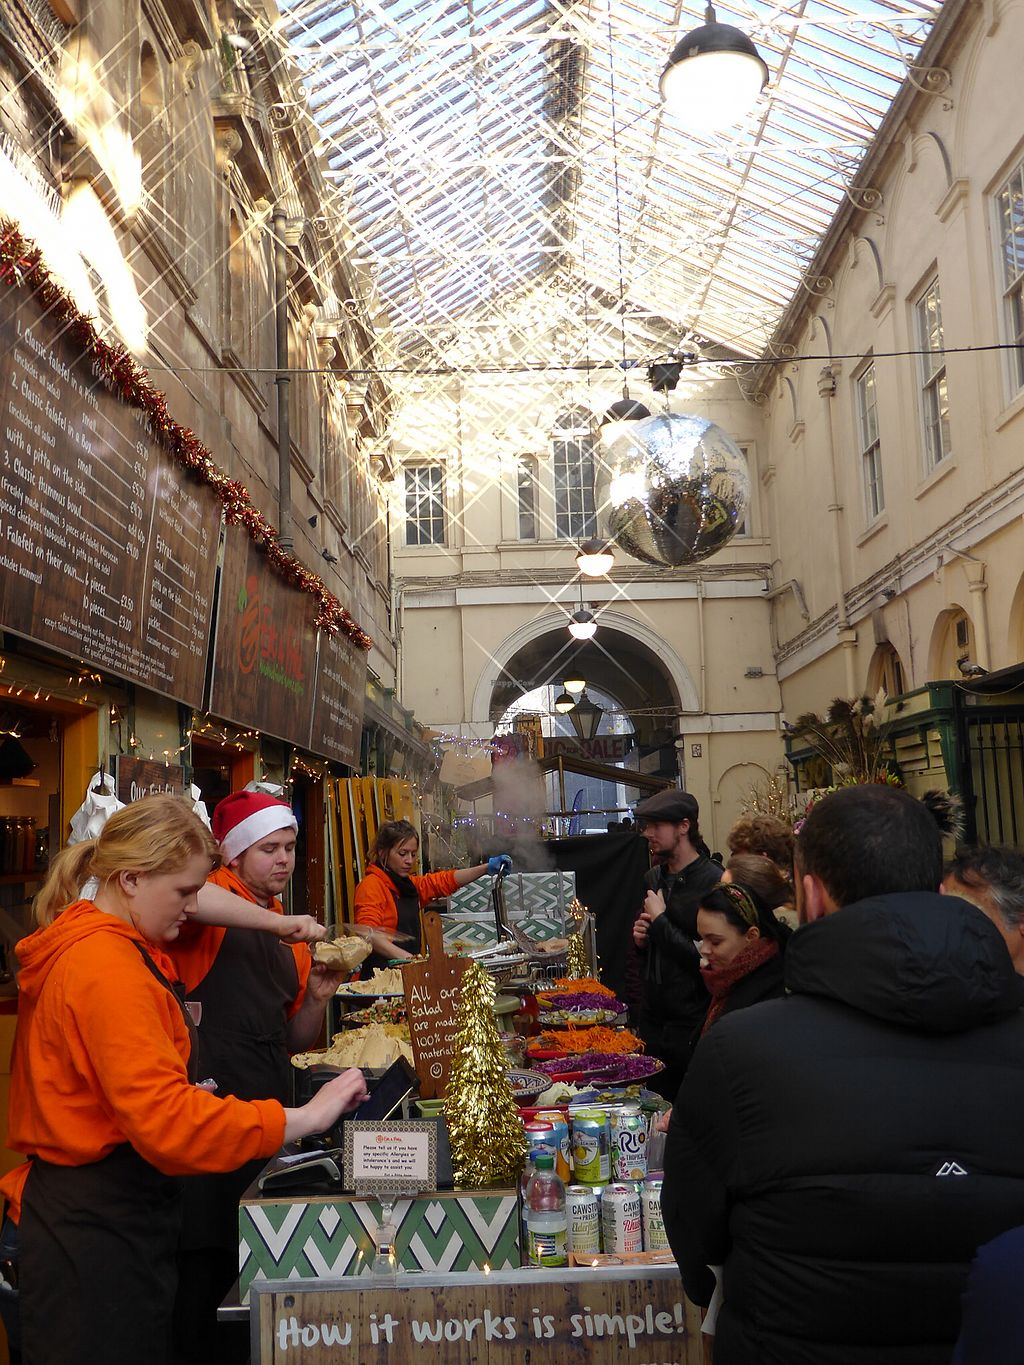 """Photo of Eat a Pitta - St Nicholas Market  by <a href=""""/members/profile/FranMcgarryArtist"""">FranMcgarryArtist</a> <br/>Great Value Vegan Food <br/> January 22, 2018  - <a href='/contact/abuse/image/32313/349857'>Report</a>"""